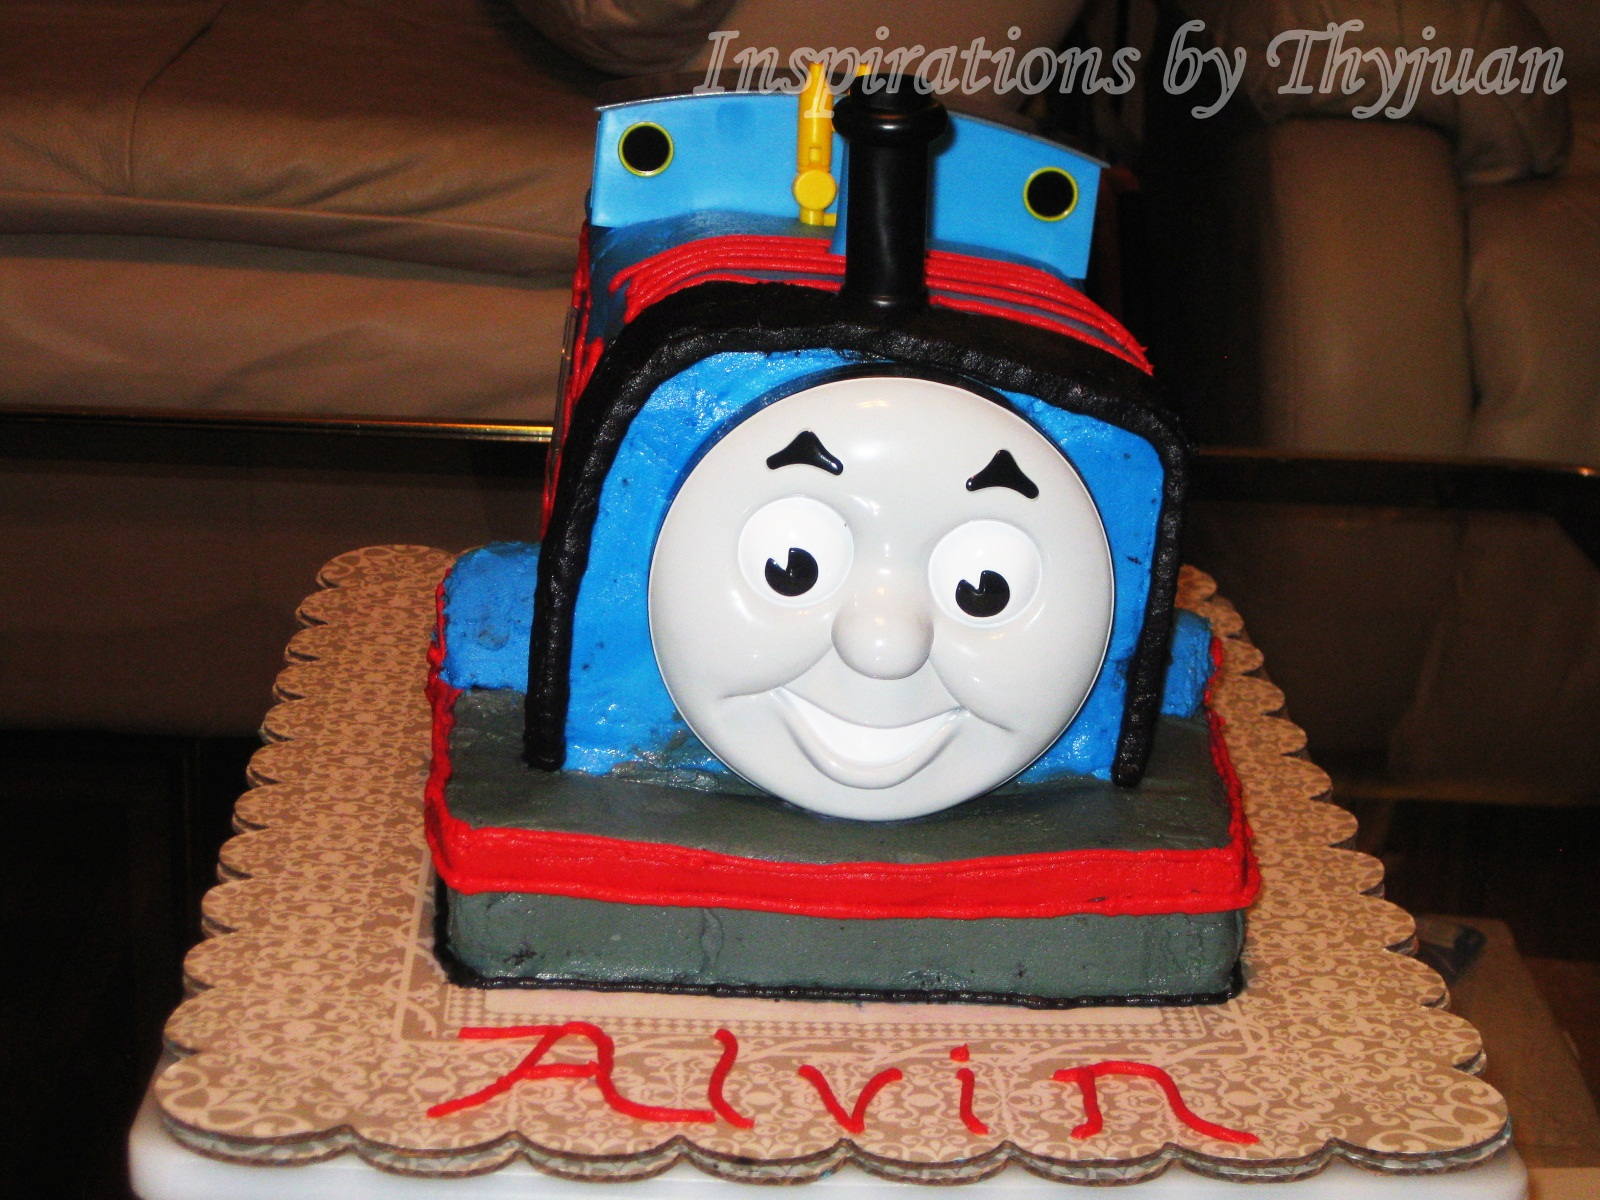 Cake Images Of Thomas The Train : Inspirations by Thyjuan LLC.: Thomas The Train 3-D Cake